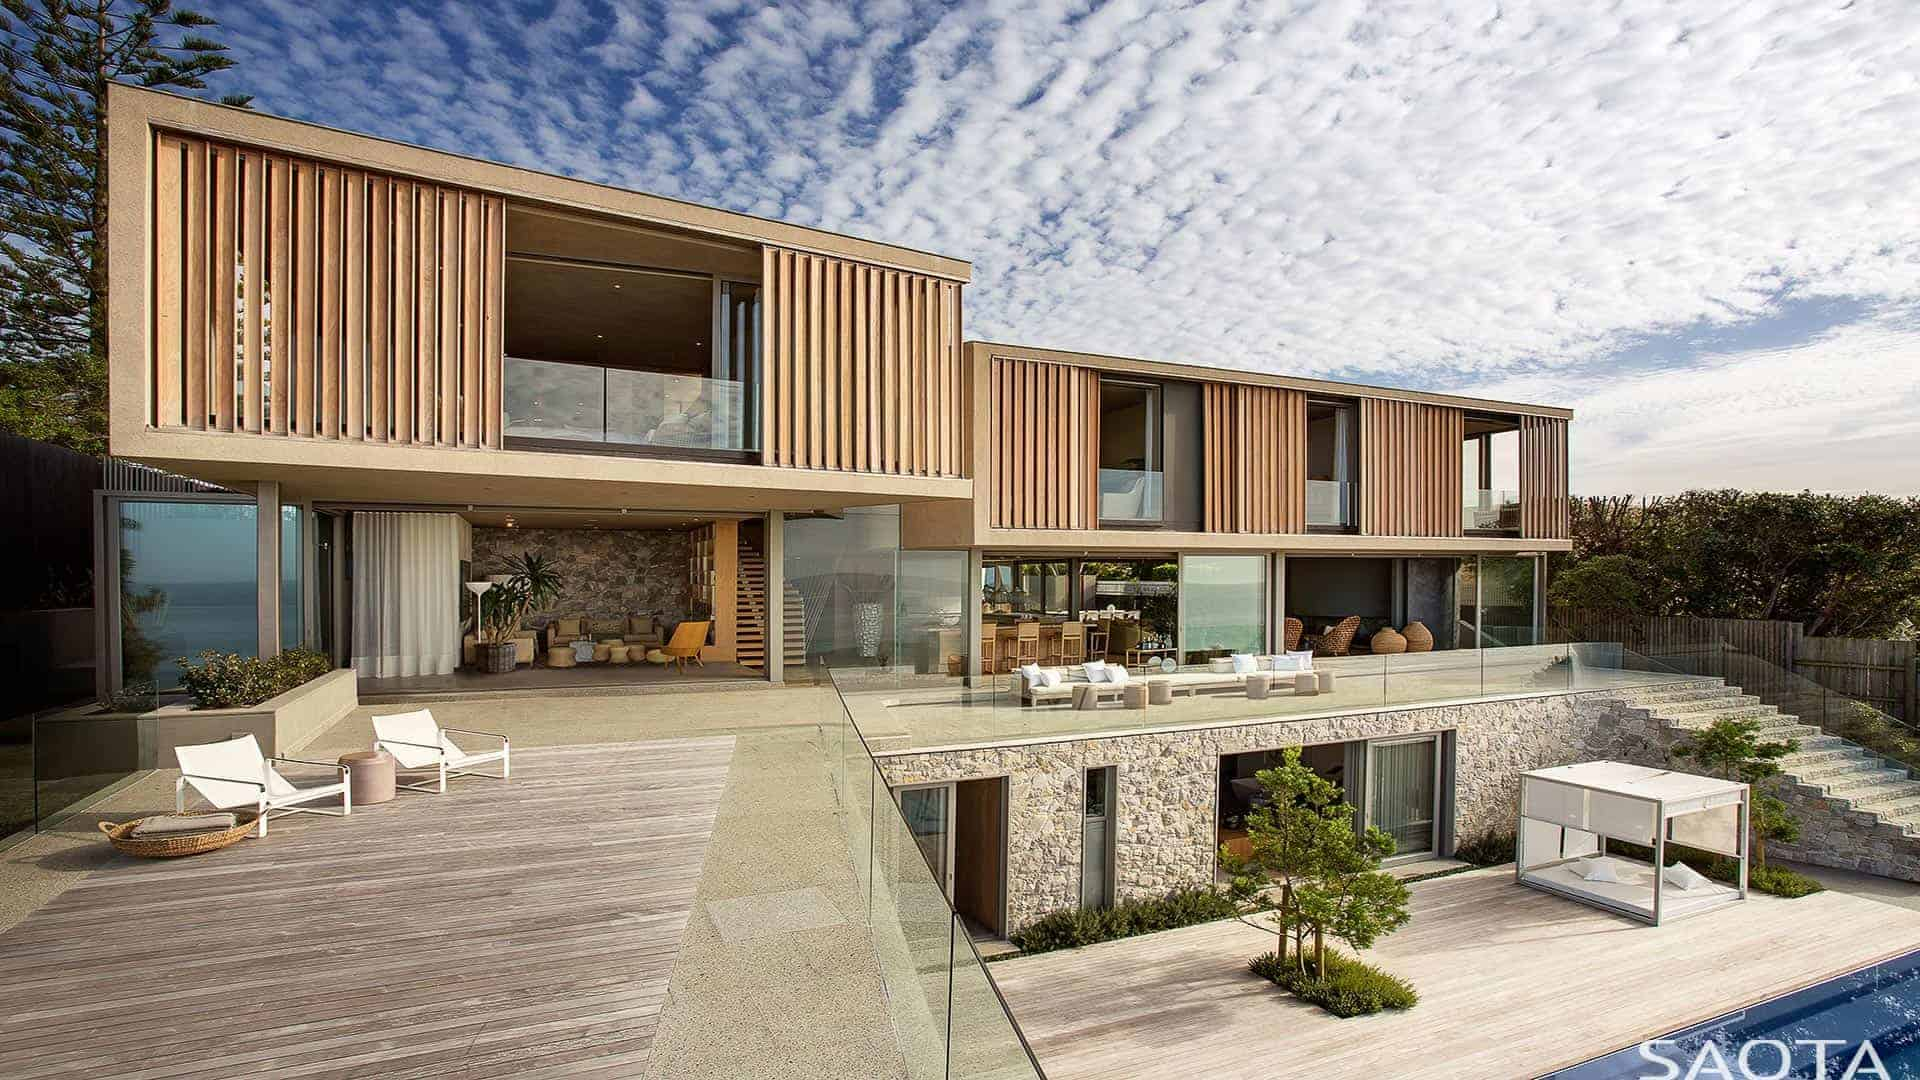 A sprawling modern house featuring a large outdoor area with a swimming pool.